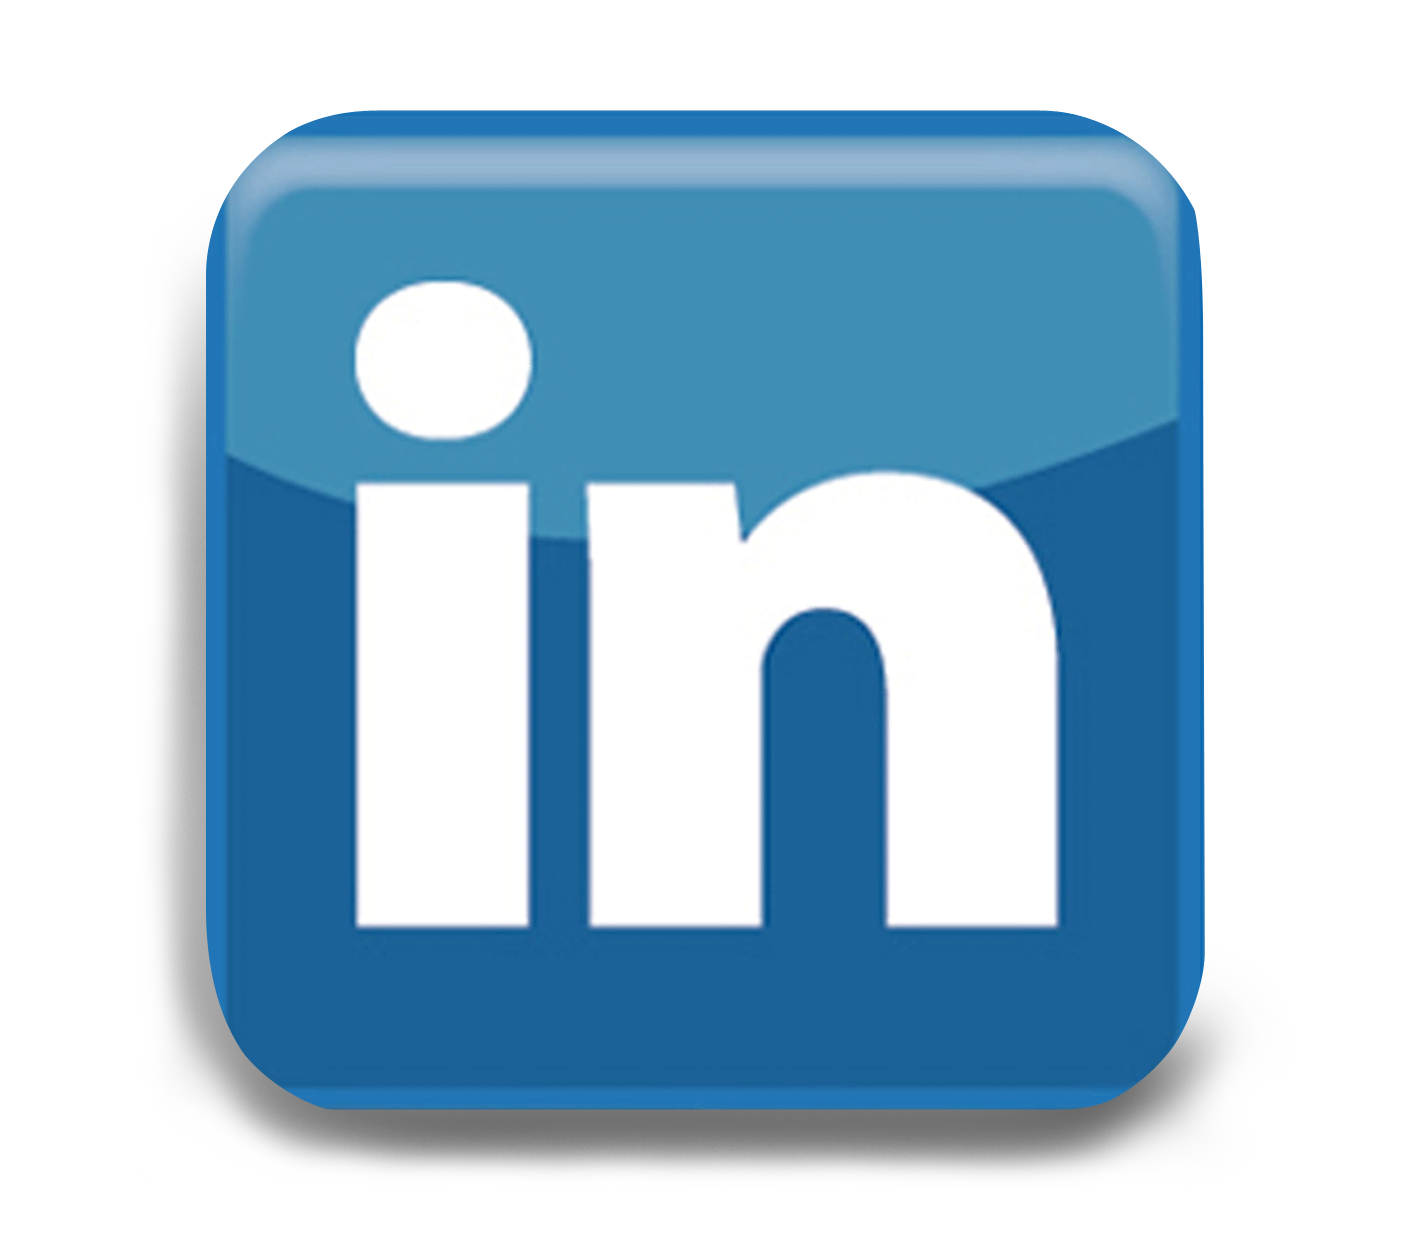 To properly use LinkedIn for your company's advantage, you